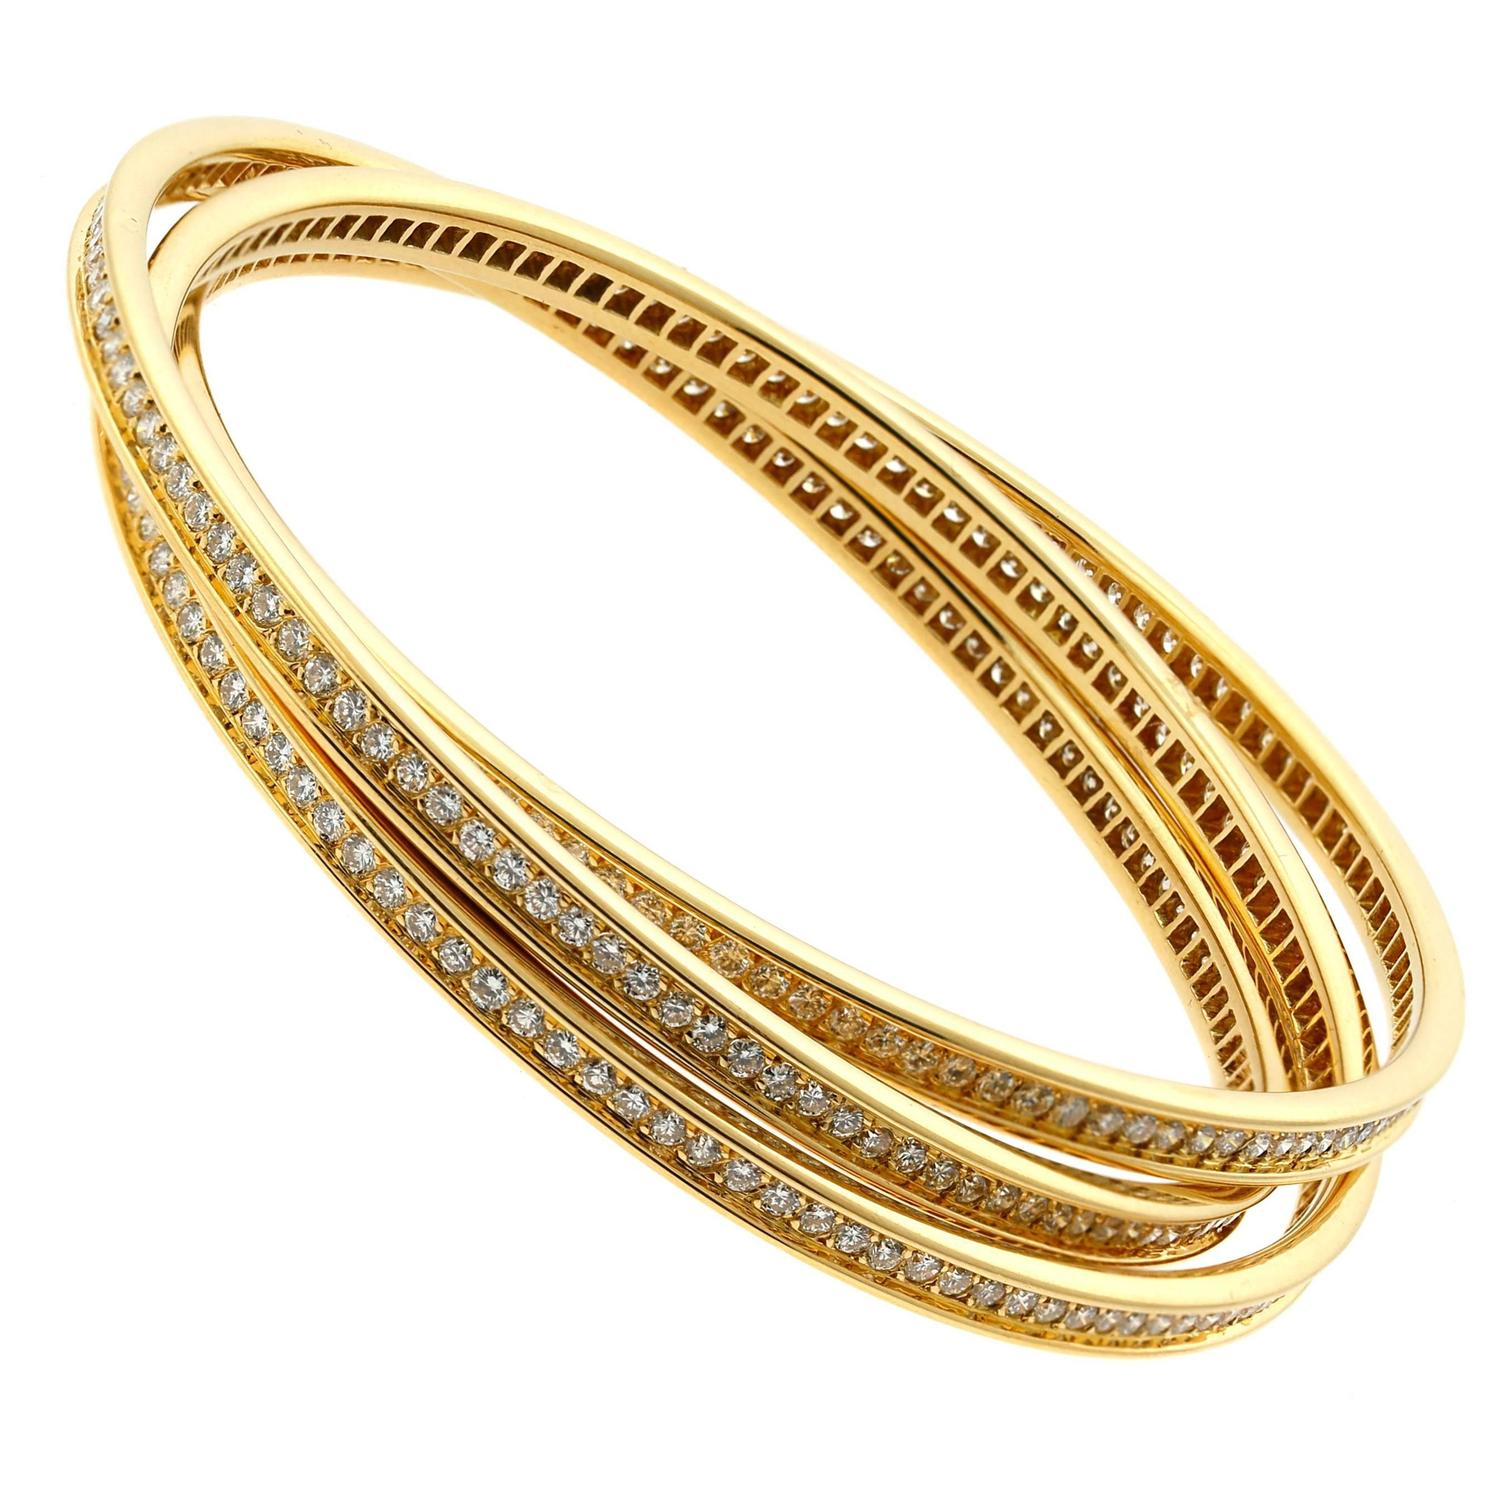 girl bracelet product zircon bangle christmas for champagne bangles popular double jewelry party model valentine gold gifts bracelets and women anniversary diamond ladies